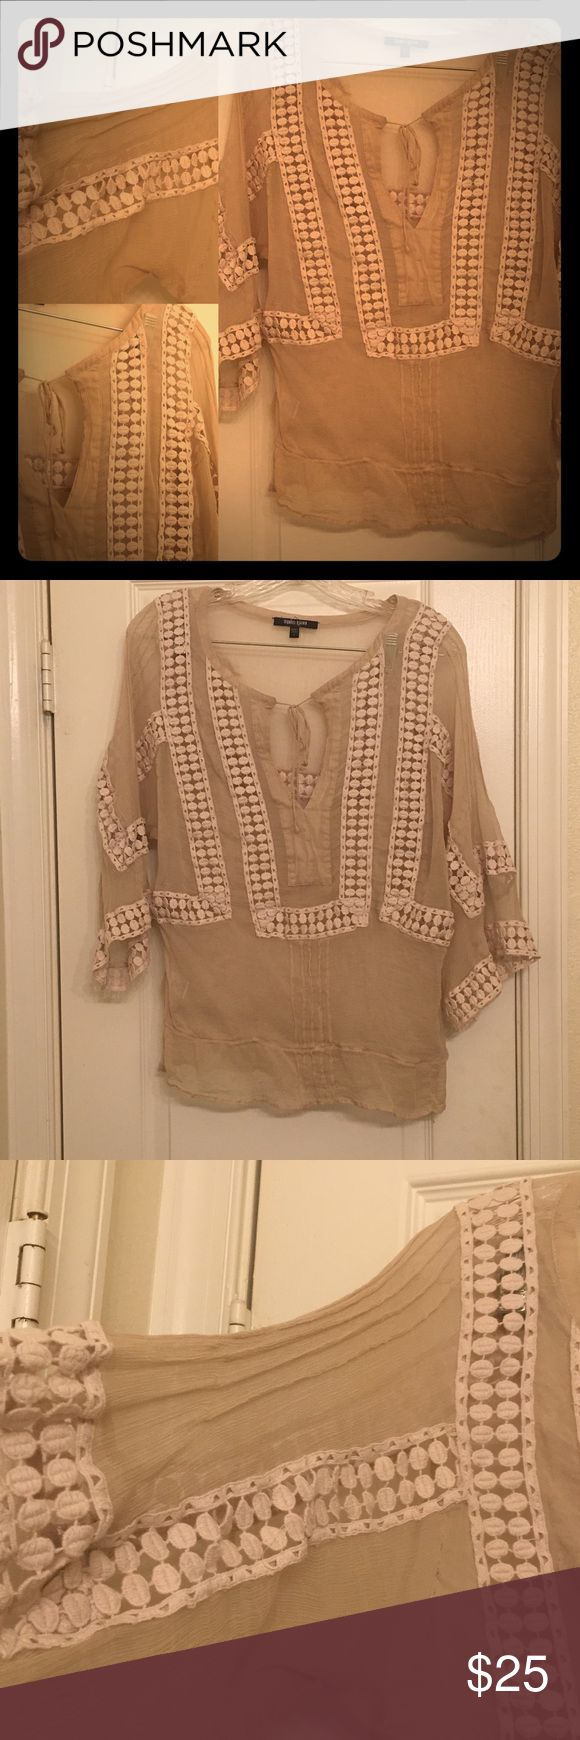 Ladies Sheer Bohemian Blouse with detailed sleeves Ladies Sheer Bohemian Blouse with detailed sleeves. Purchased from Anthropology/ it came with a tank top under it but I don't have it anymore. It can be worn with a nude bra under it. It has a very Bohemian feel to it. Size Large. Daniel Rainn design. Anthropologie Tops Blouses